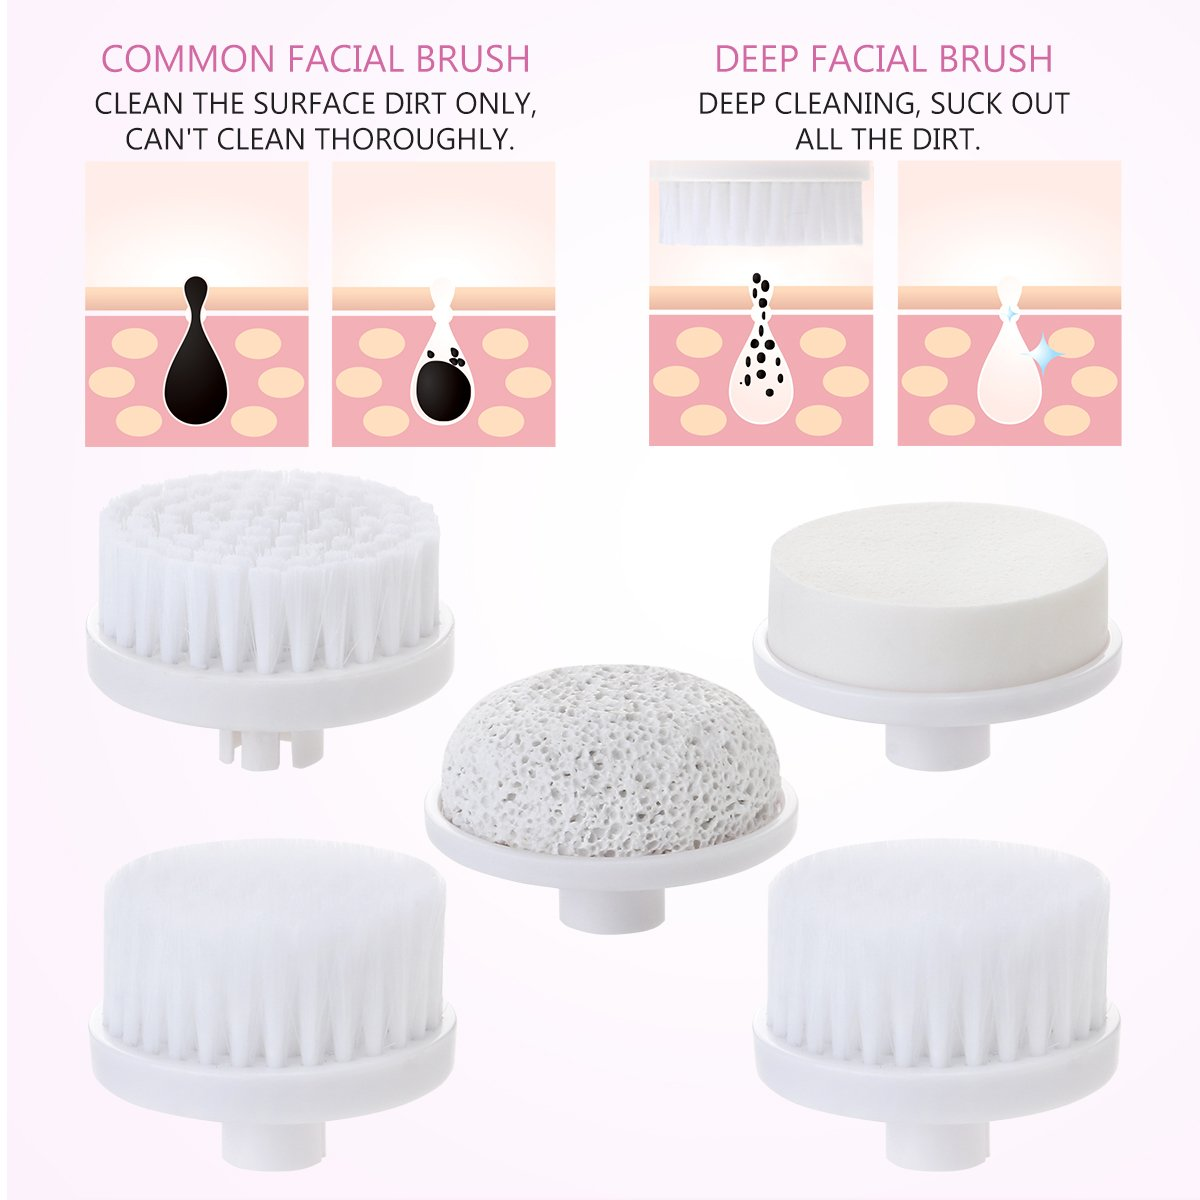 Facial Cleansing Brush Head Replacement 5PCS for 7 in 1 Waterproof Body Facial Brush